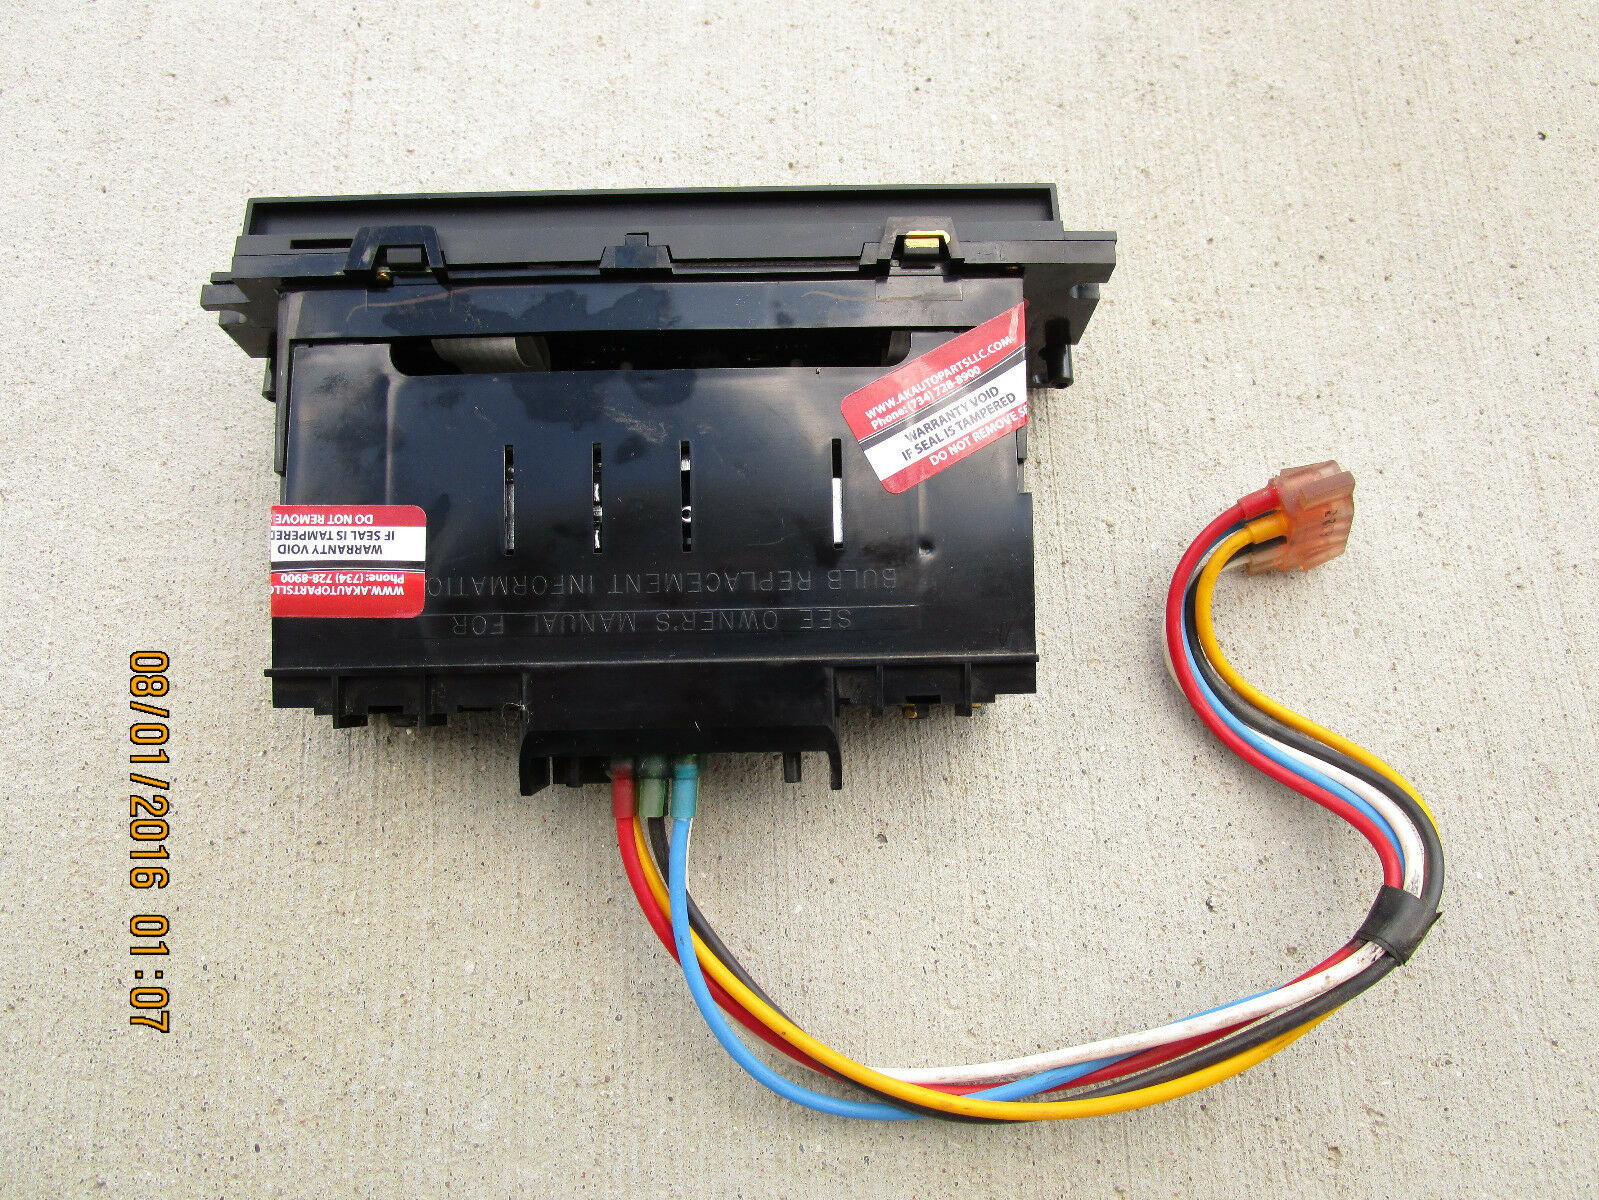 Used 1998 Mercury Grand Marquis A/C and Heater Controls for Sale